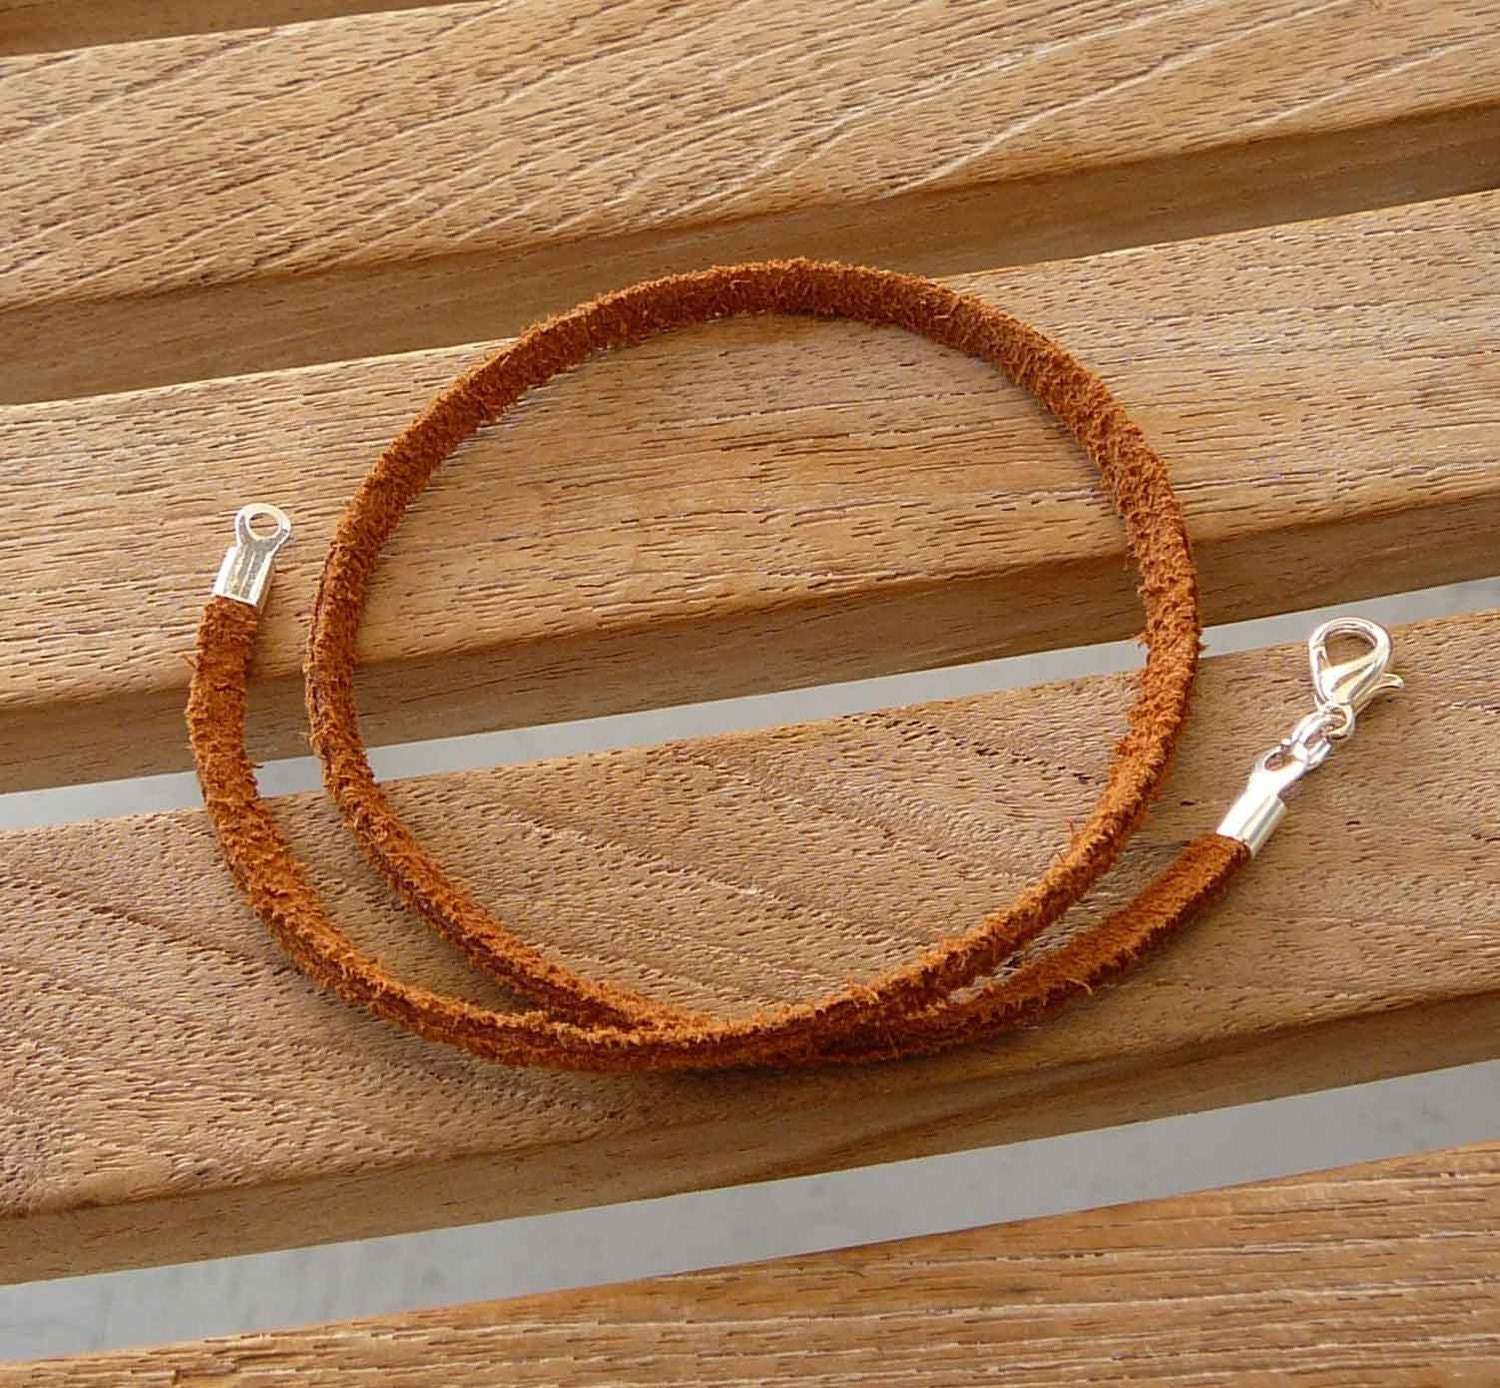 20 Real Suede Necklace Cords - Any length - Handmade in USA